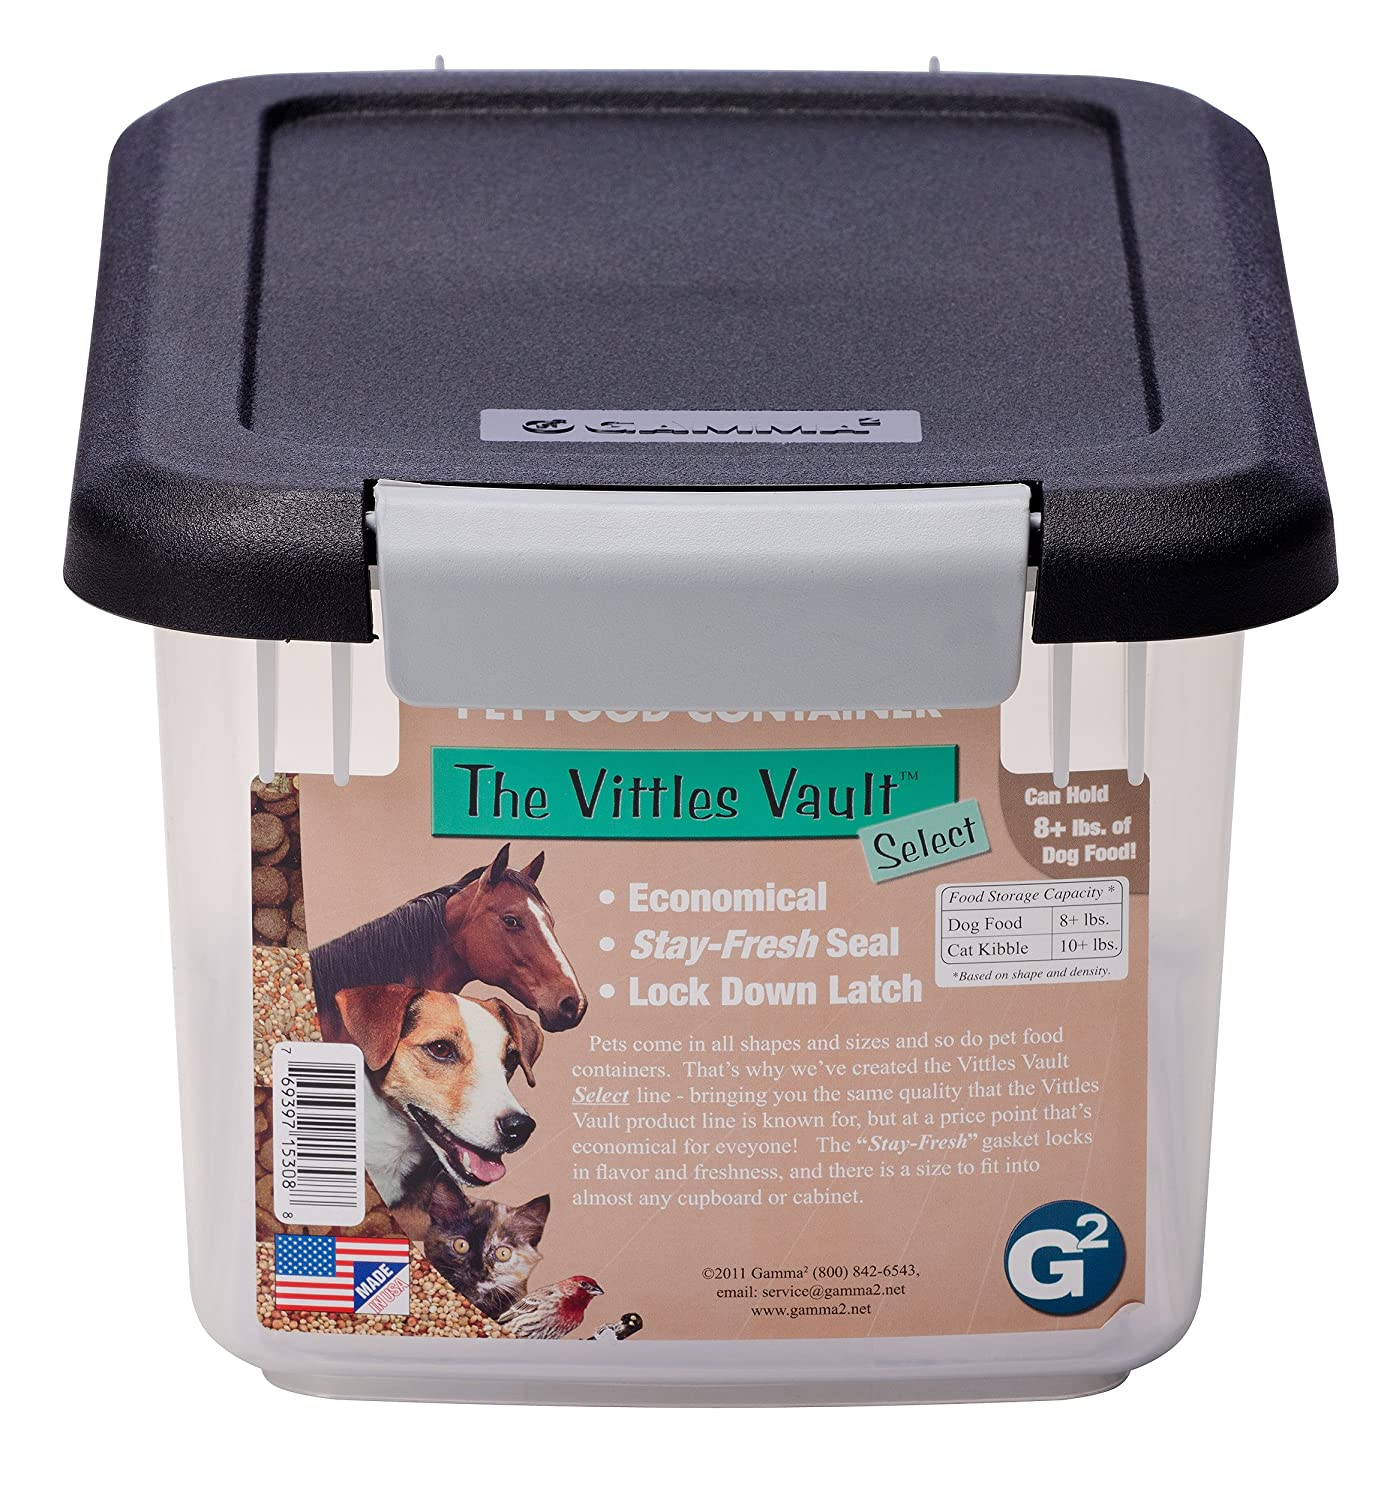 amazoncom gamma2 vittles vault 8 lb pet food container pet food storage products pet supplies - Dog Food Containers